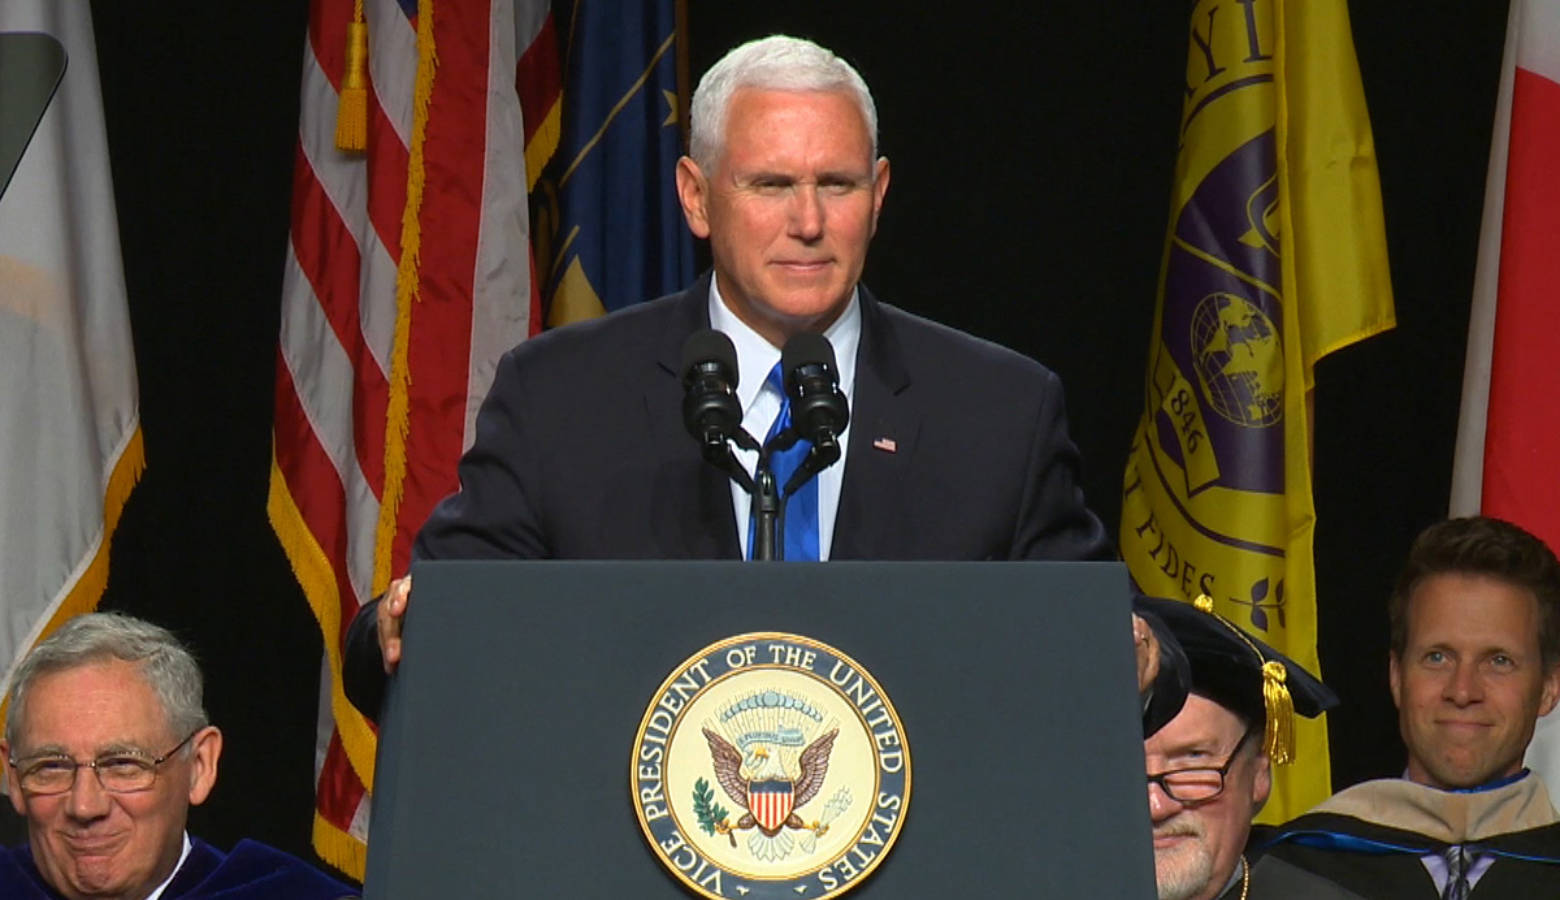 Vice President Mike Pence speaks at Taylor University's commencement. (Courtesy of Taylor University)